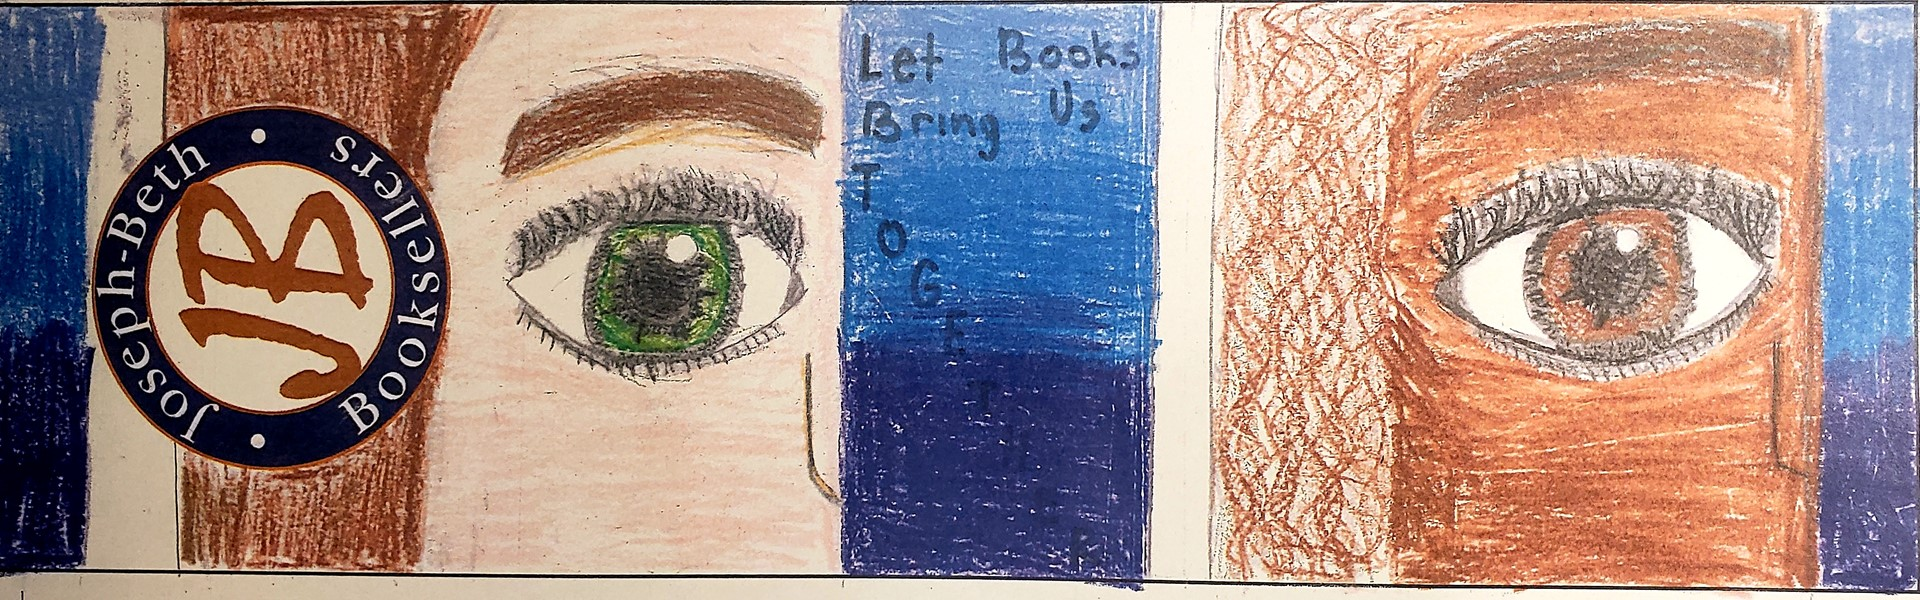 Congrats Bookmark Contest Winner Gabby Miles